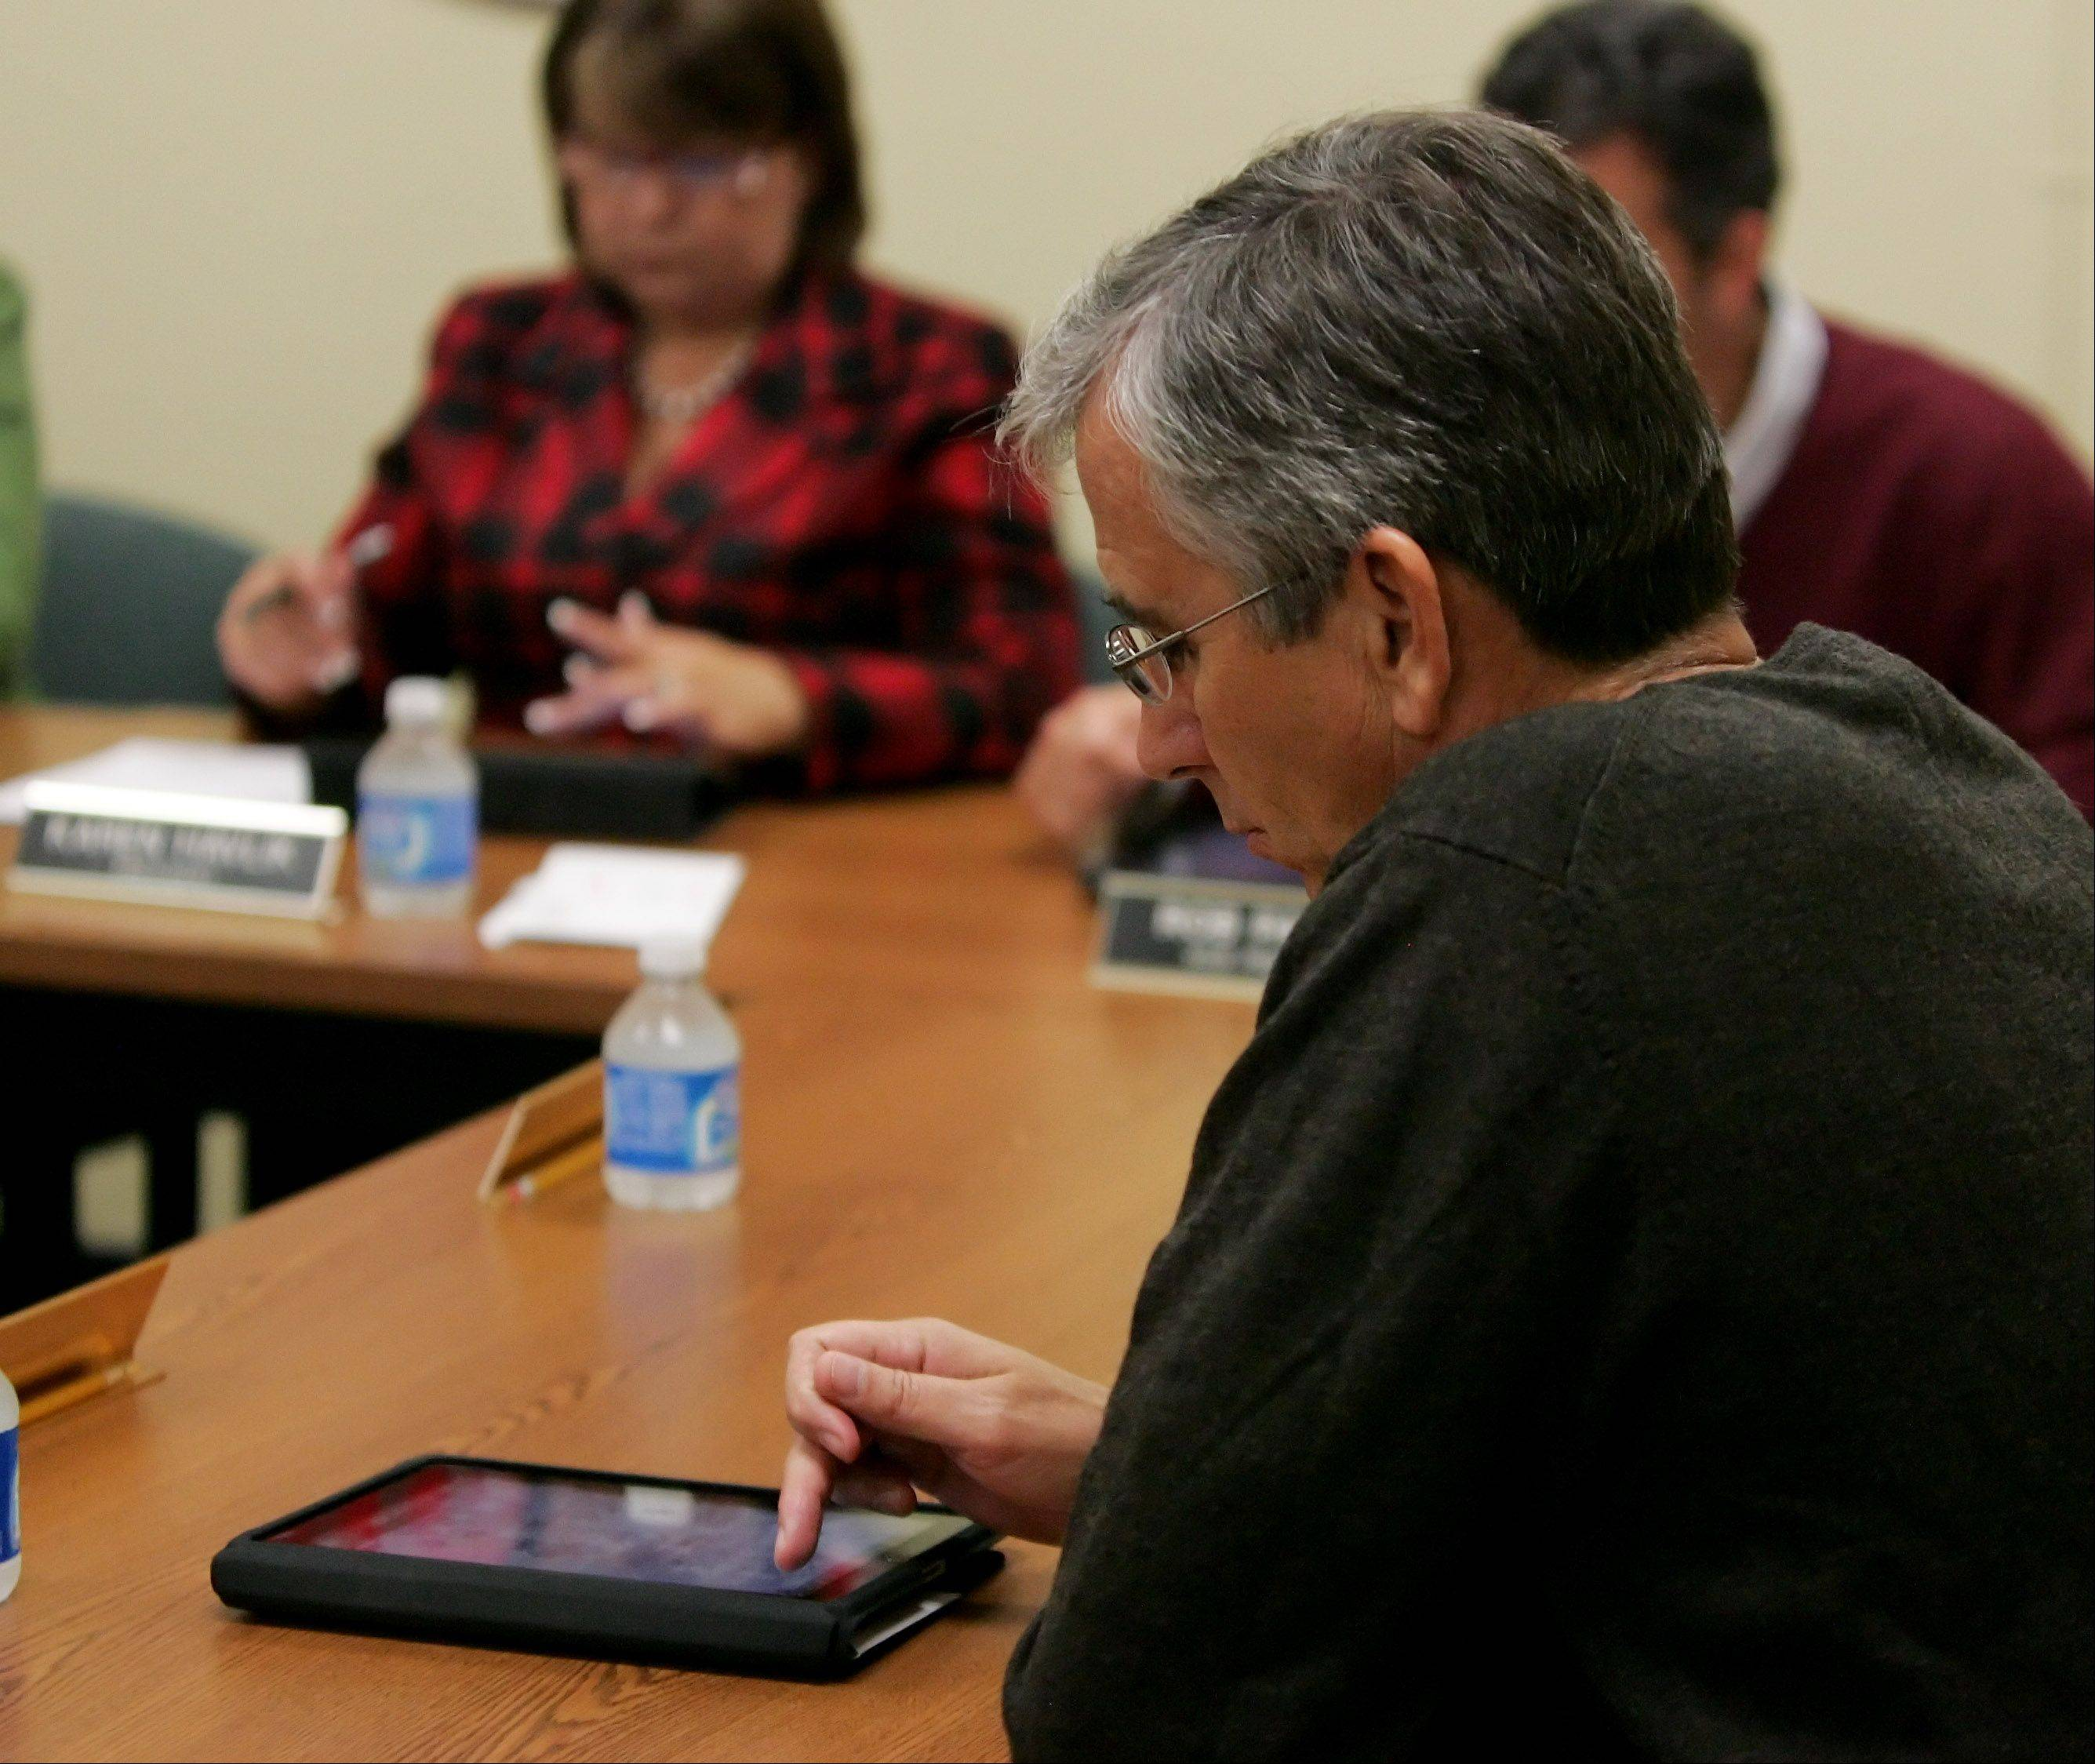 iPads help suburban governments go paperless, at a cost